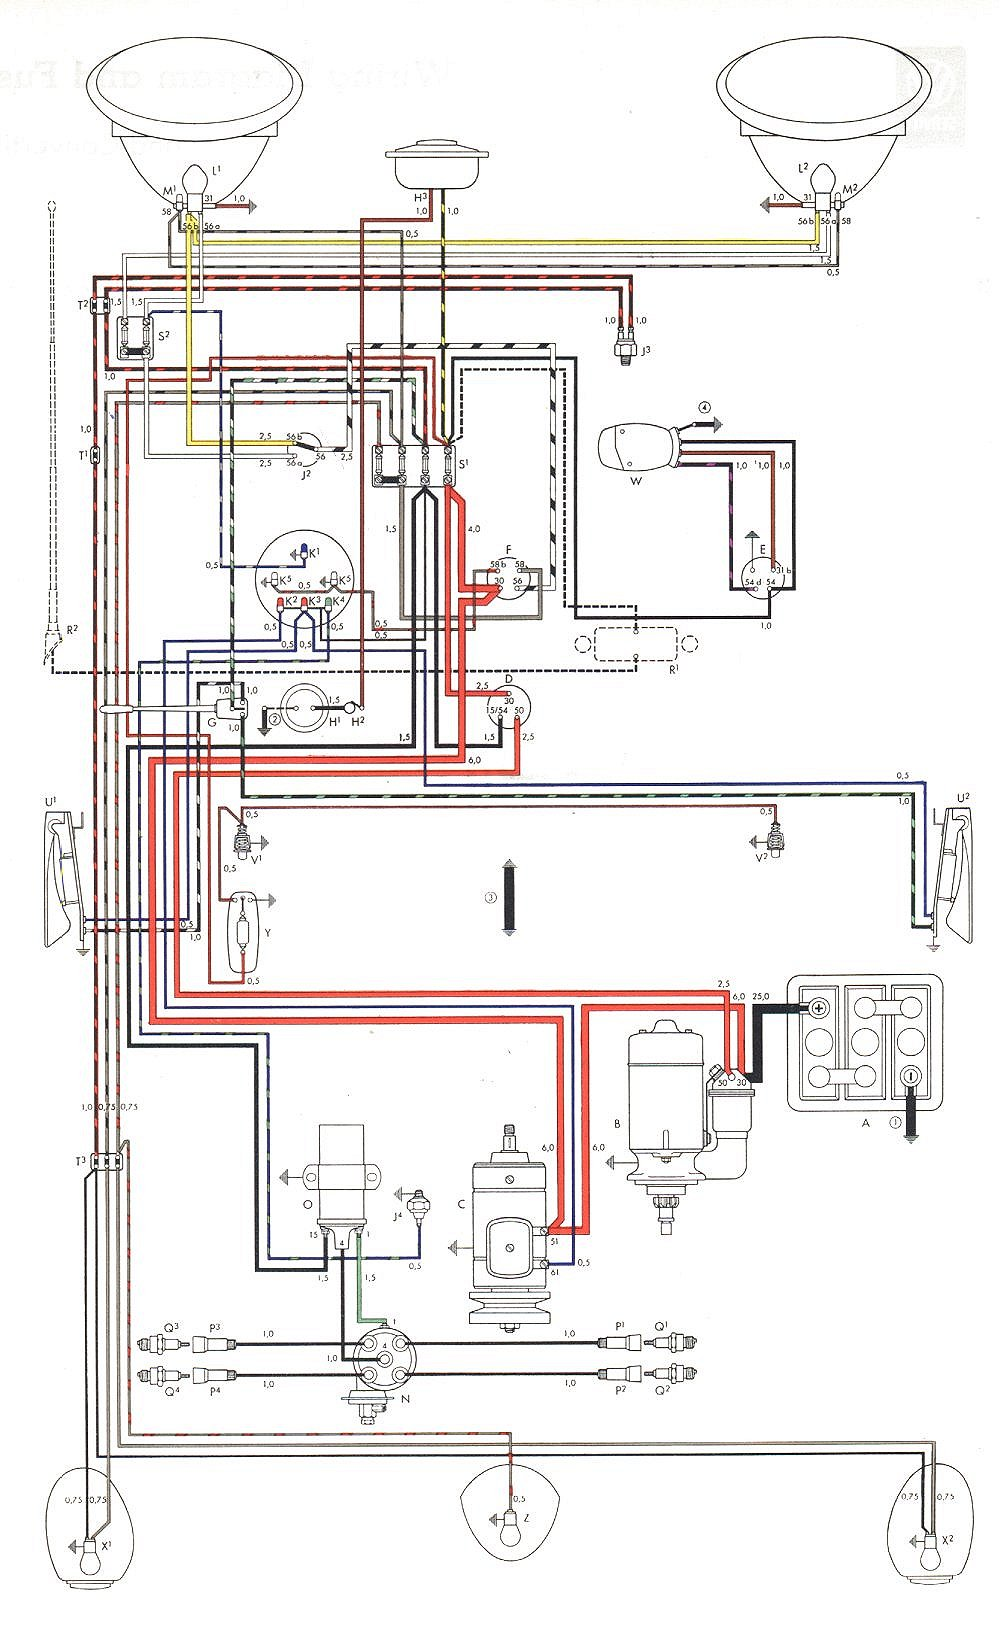 hight resolution of 1998 volkswagen beetle door wiring harness wiring diagram used 1998 vw beetle wiring harness